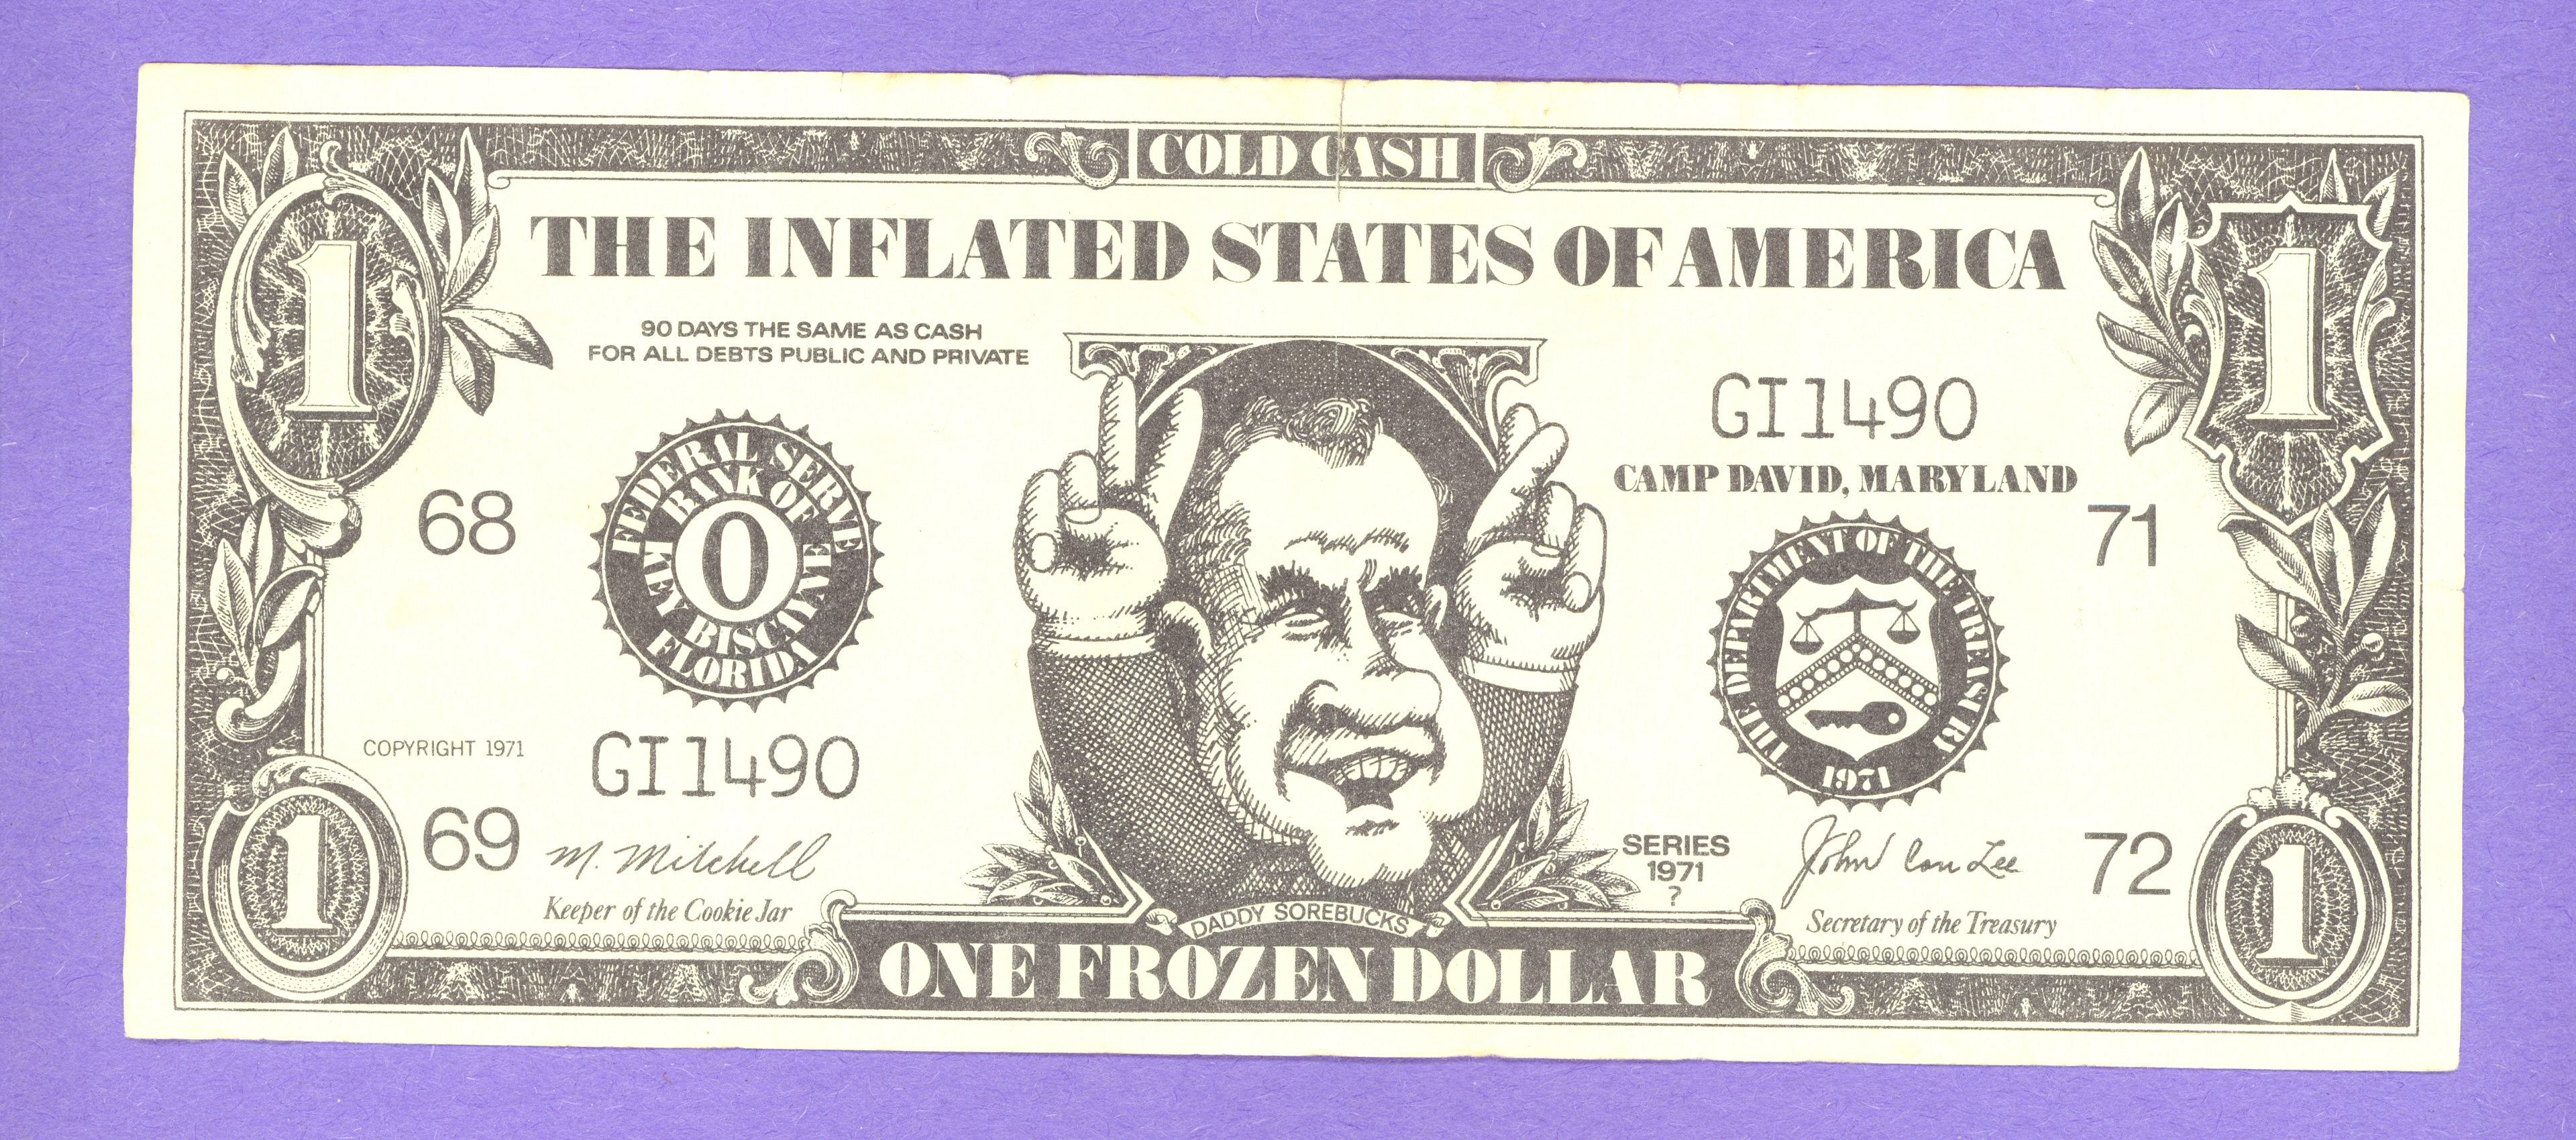 One Frozen Dollar - President Nixon - Cold Cash